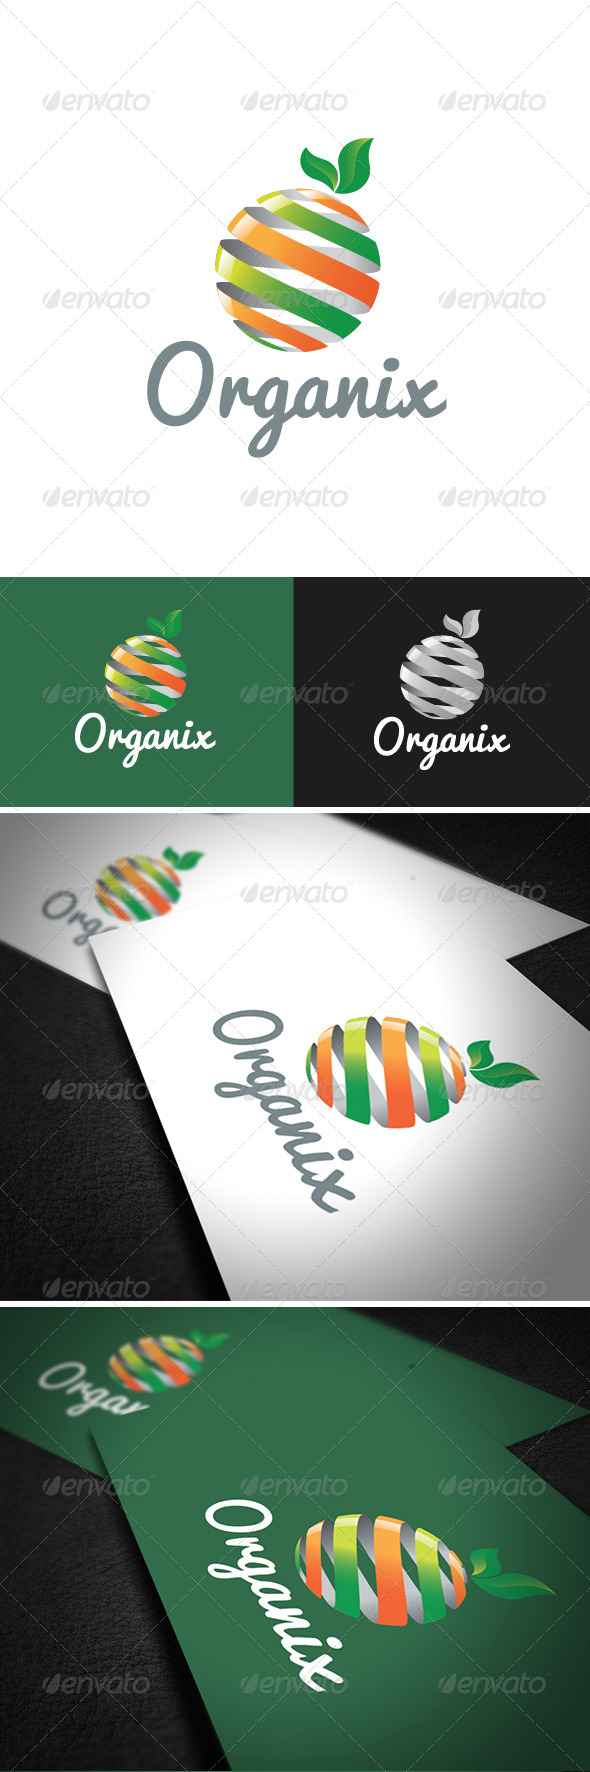 GraphicRiver Organix Logo Template 6533097